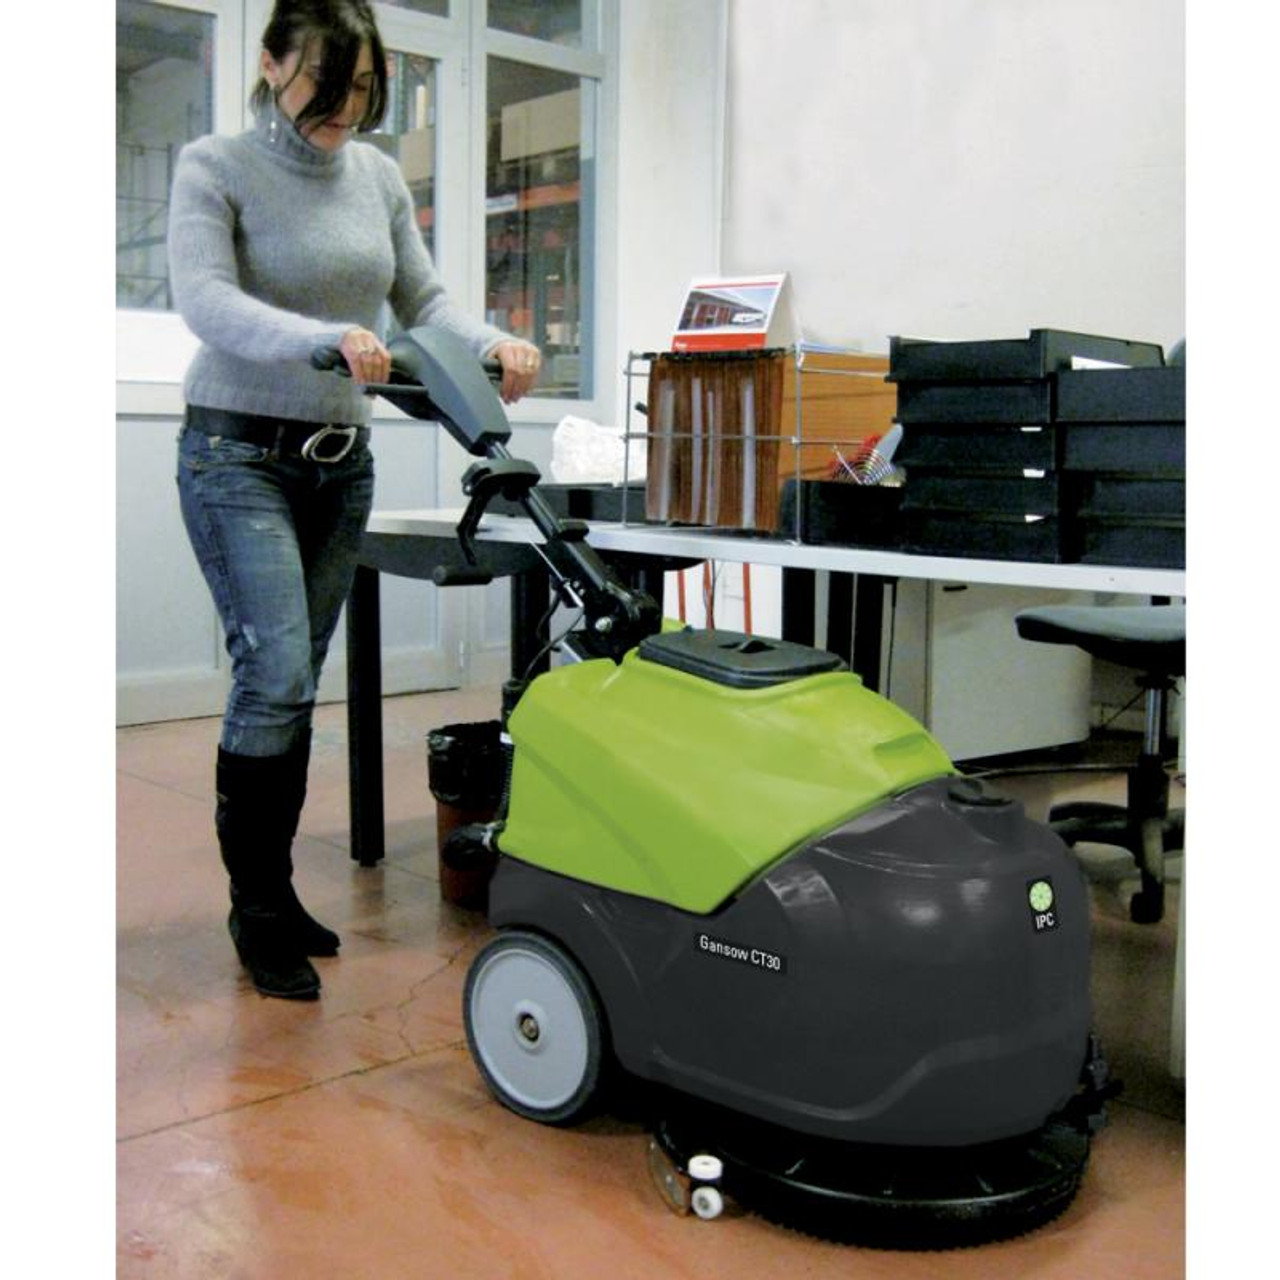 The CT30 autoscrubber is easy enough to handle for office use.